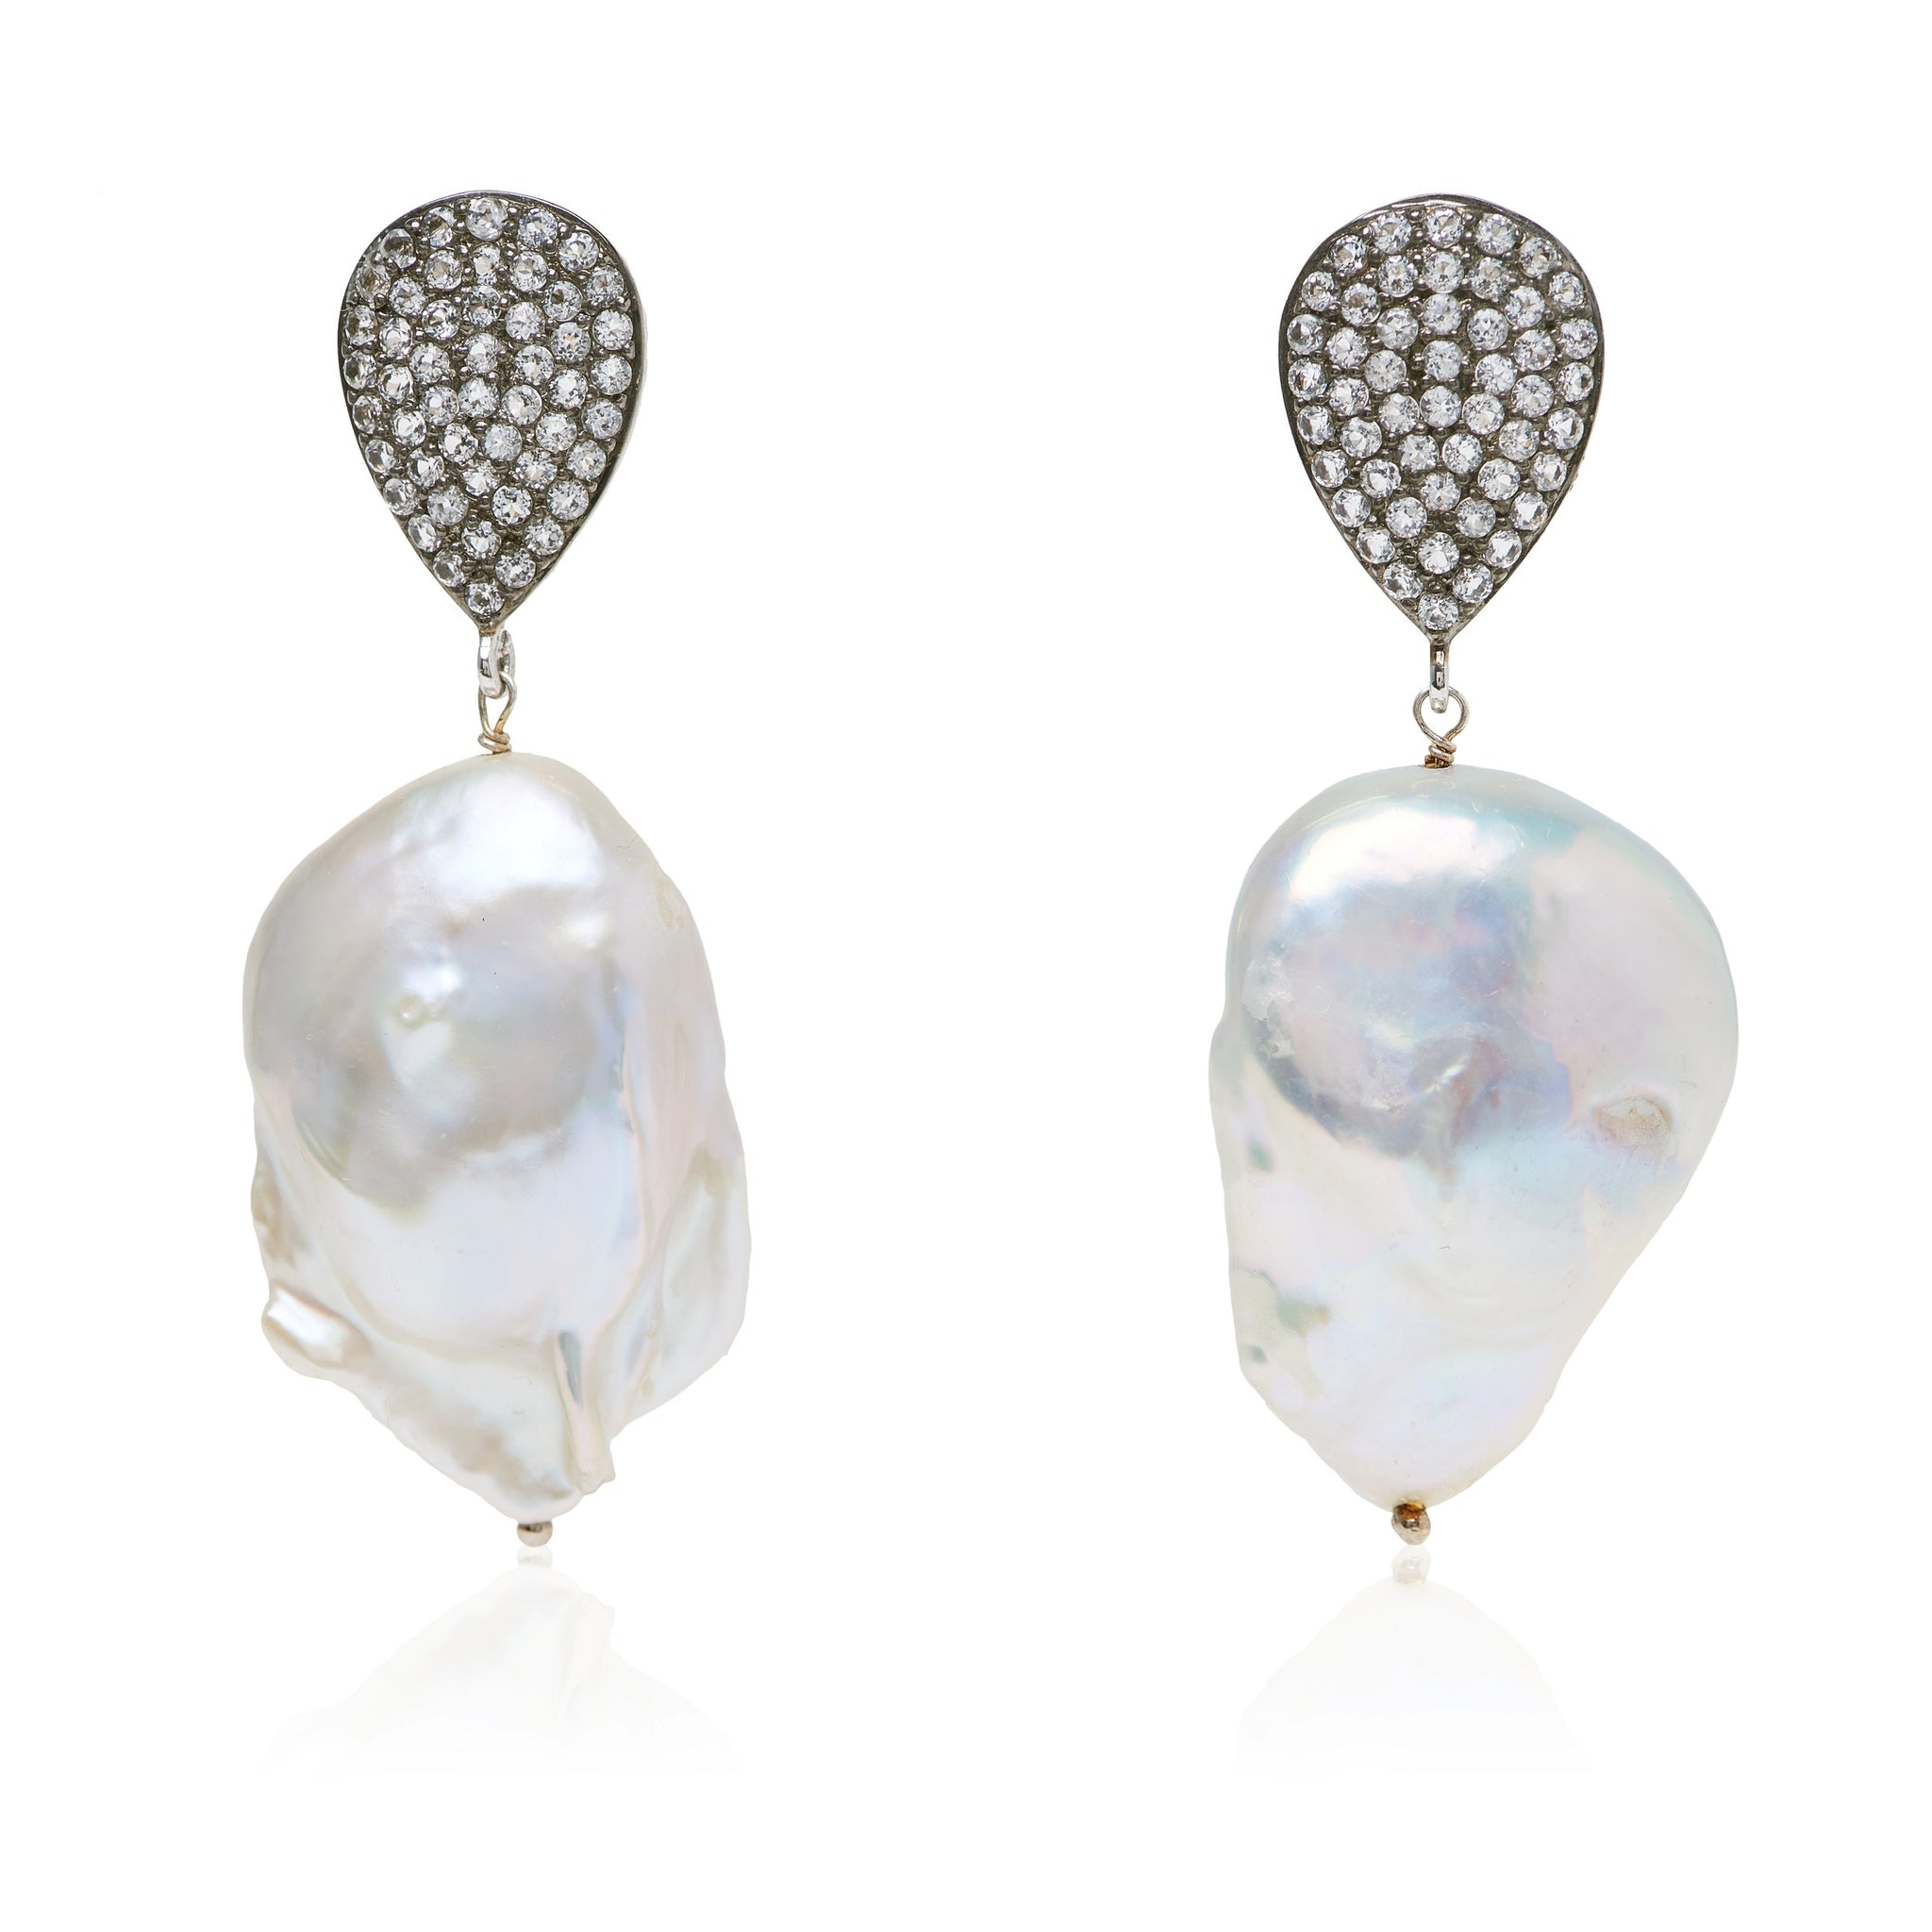 White Topaz and Baroque Pearl Earrings in Sterling Silver